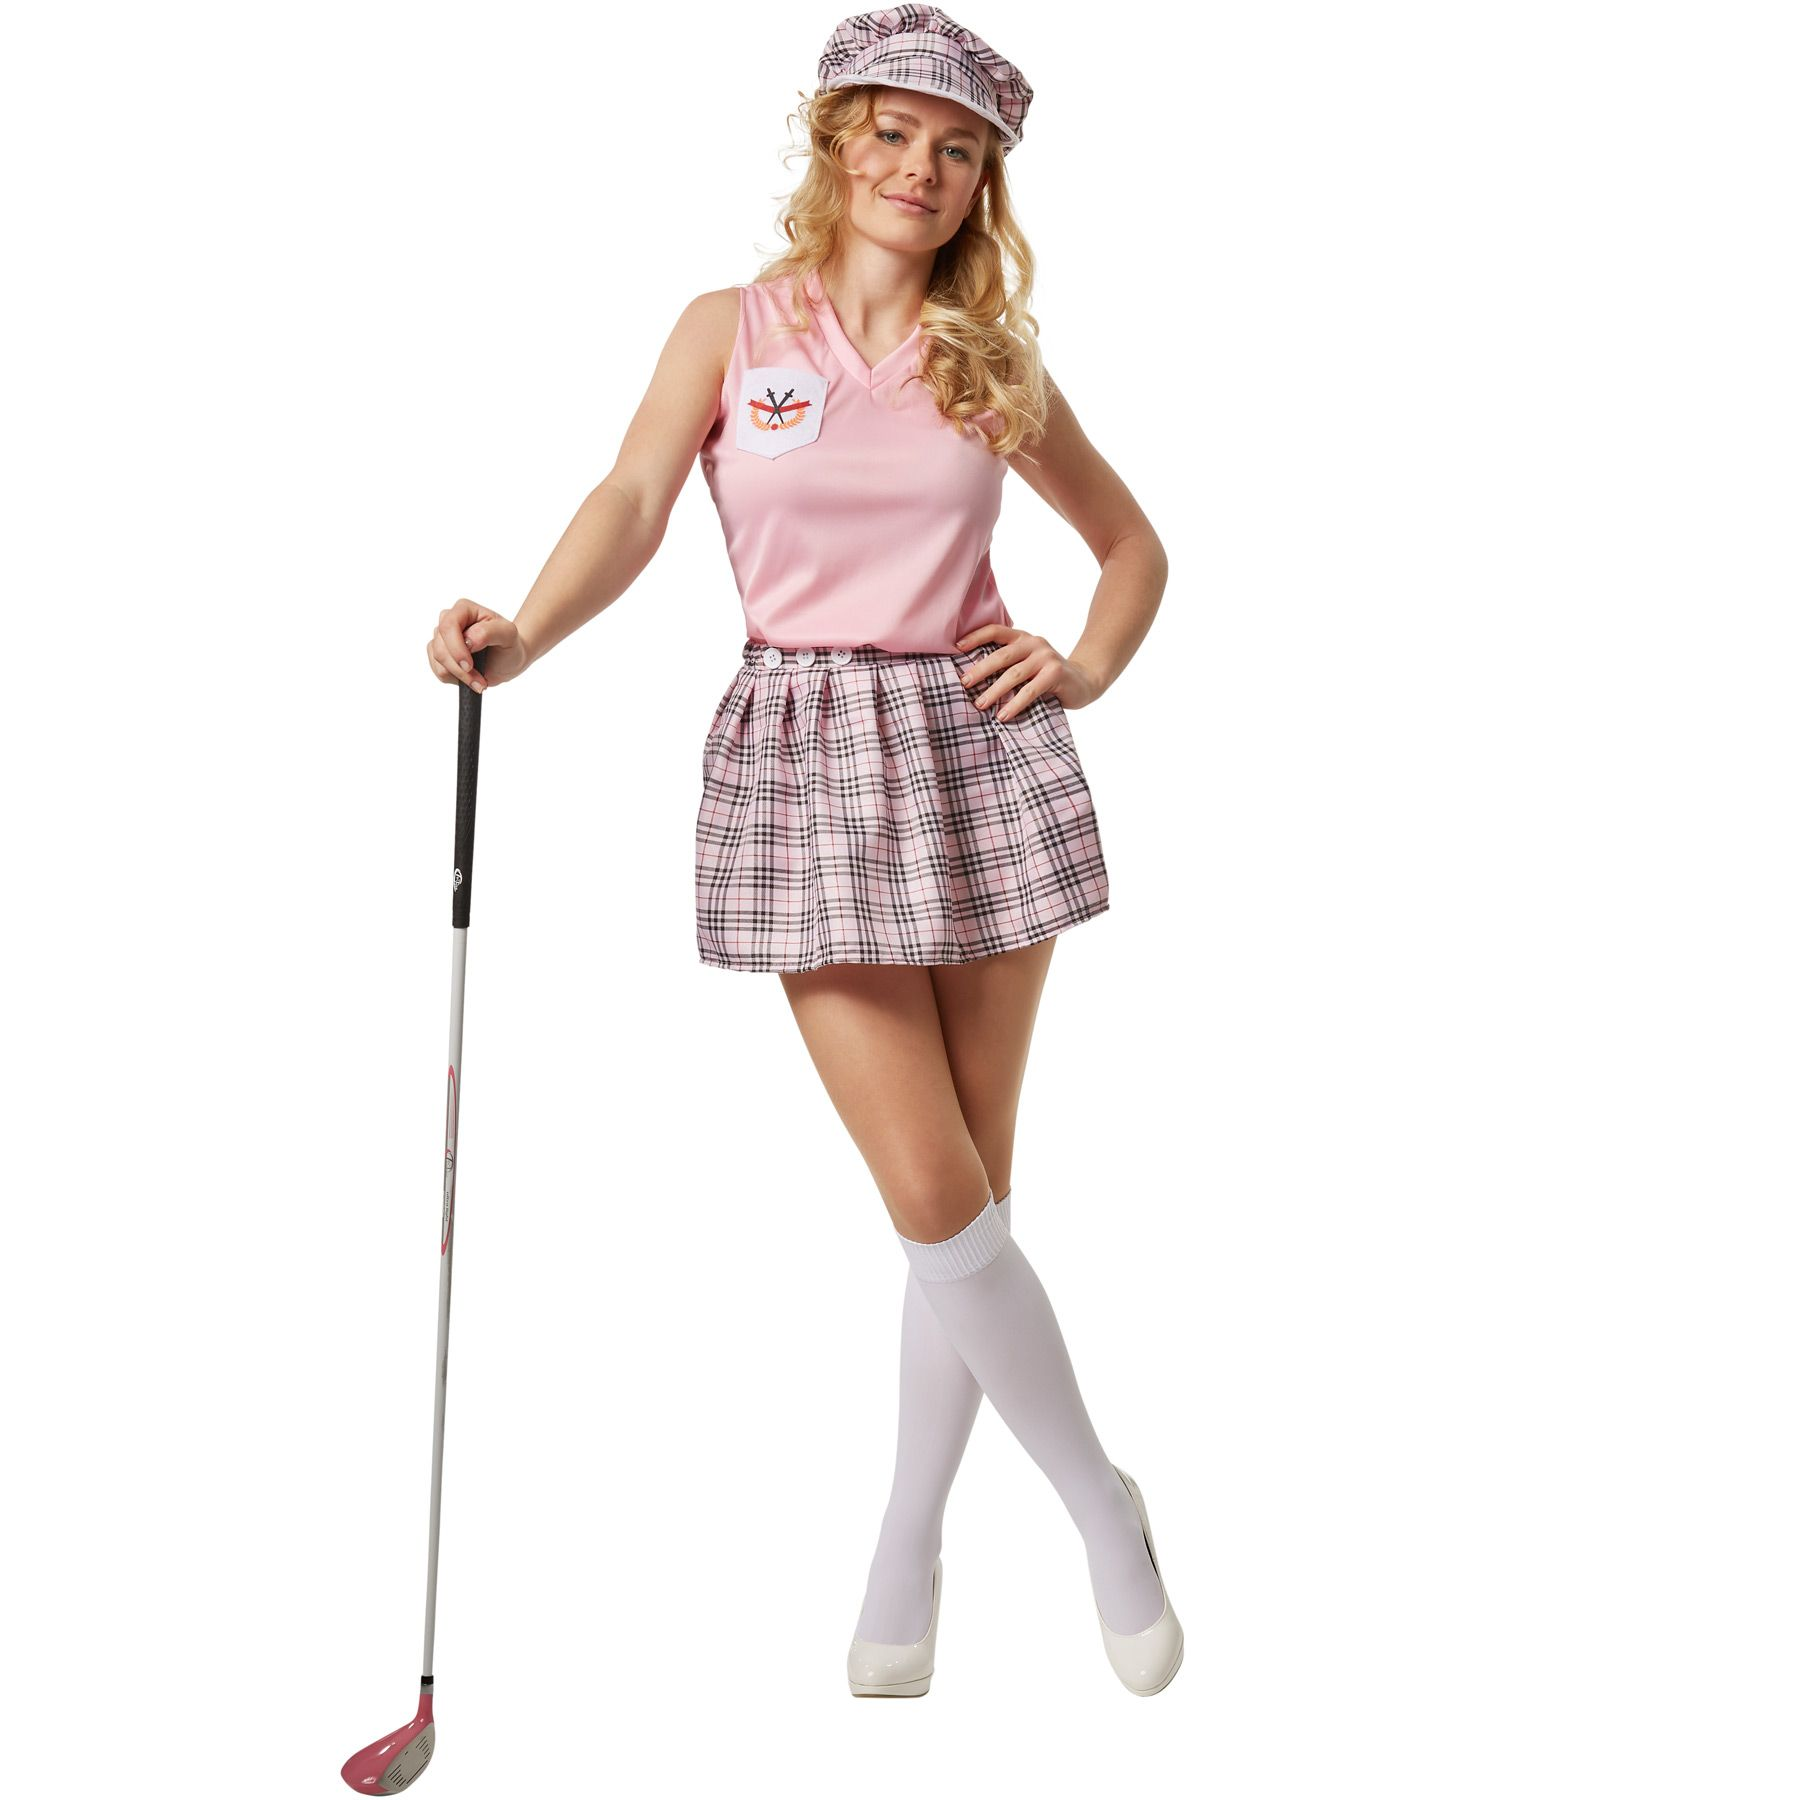 women's golfer costume golf outfit golfing player sport